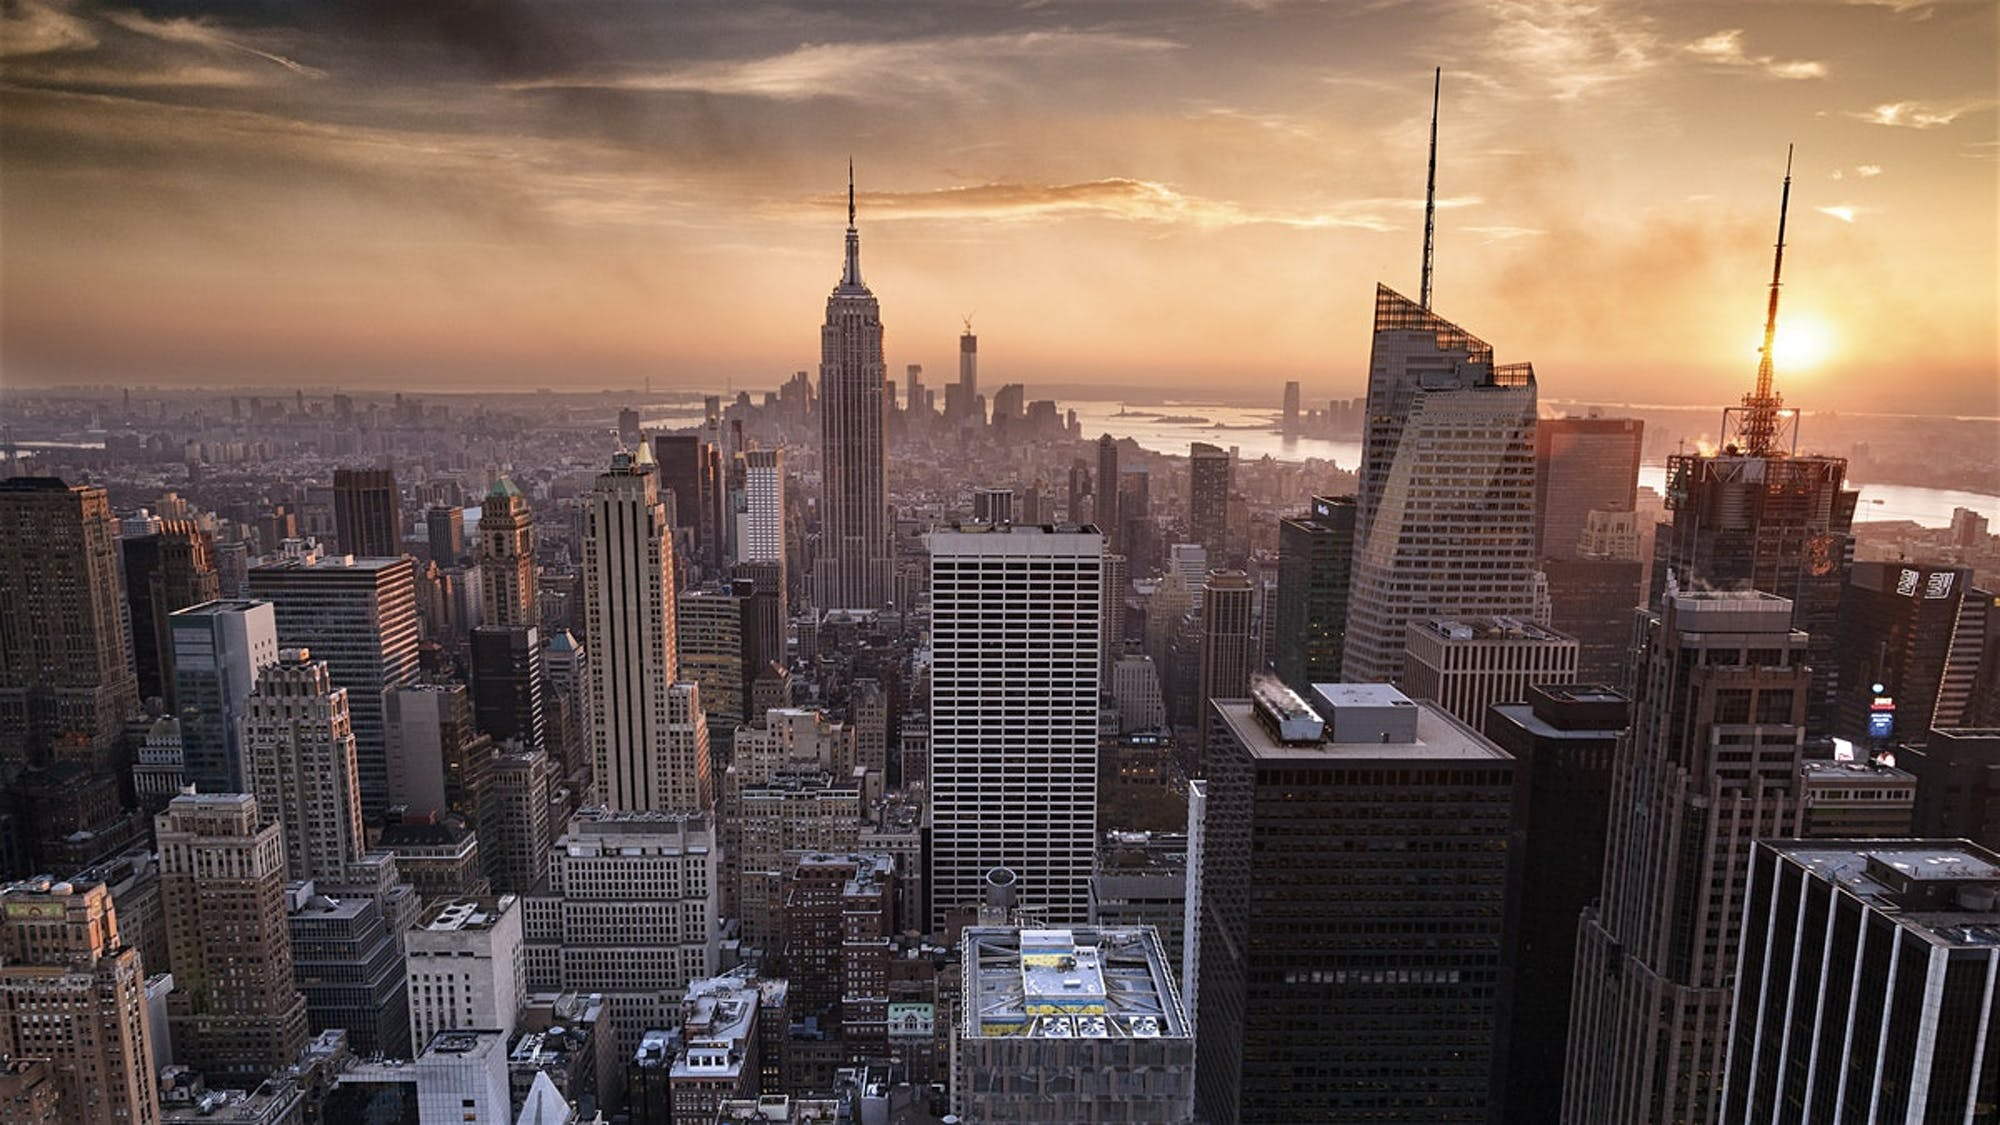 Walpole launches third annual Anglo-American trade mission to New York